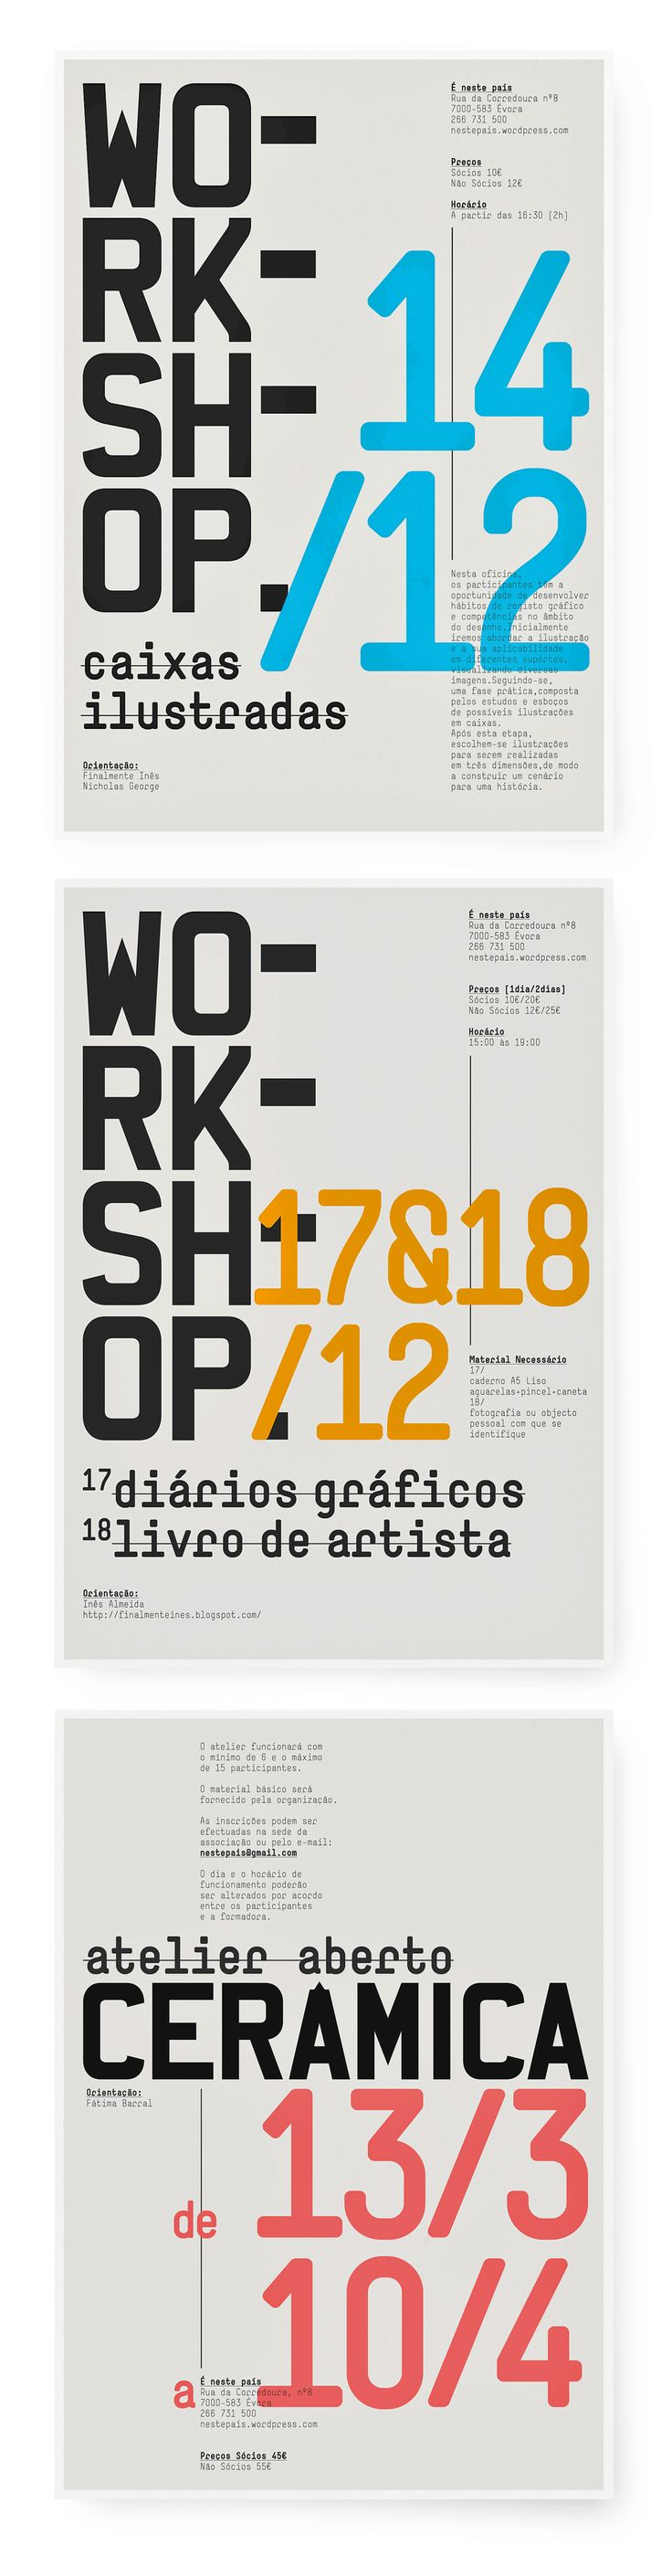 workshops é neste país.